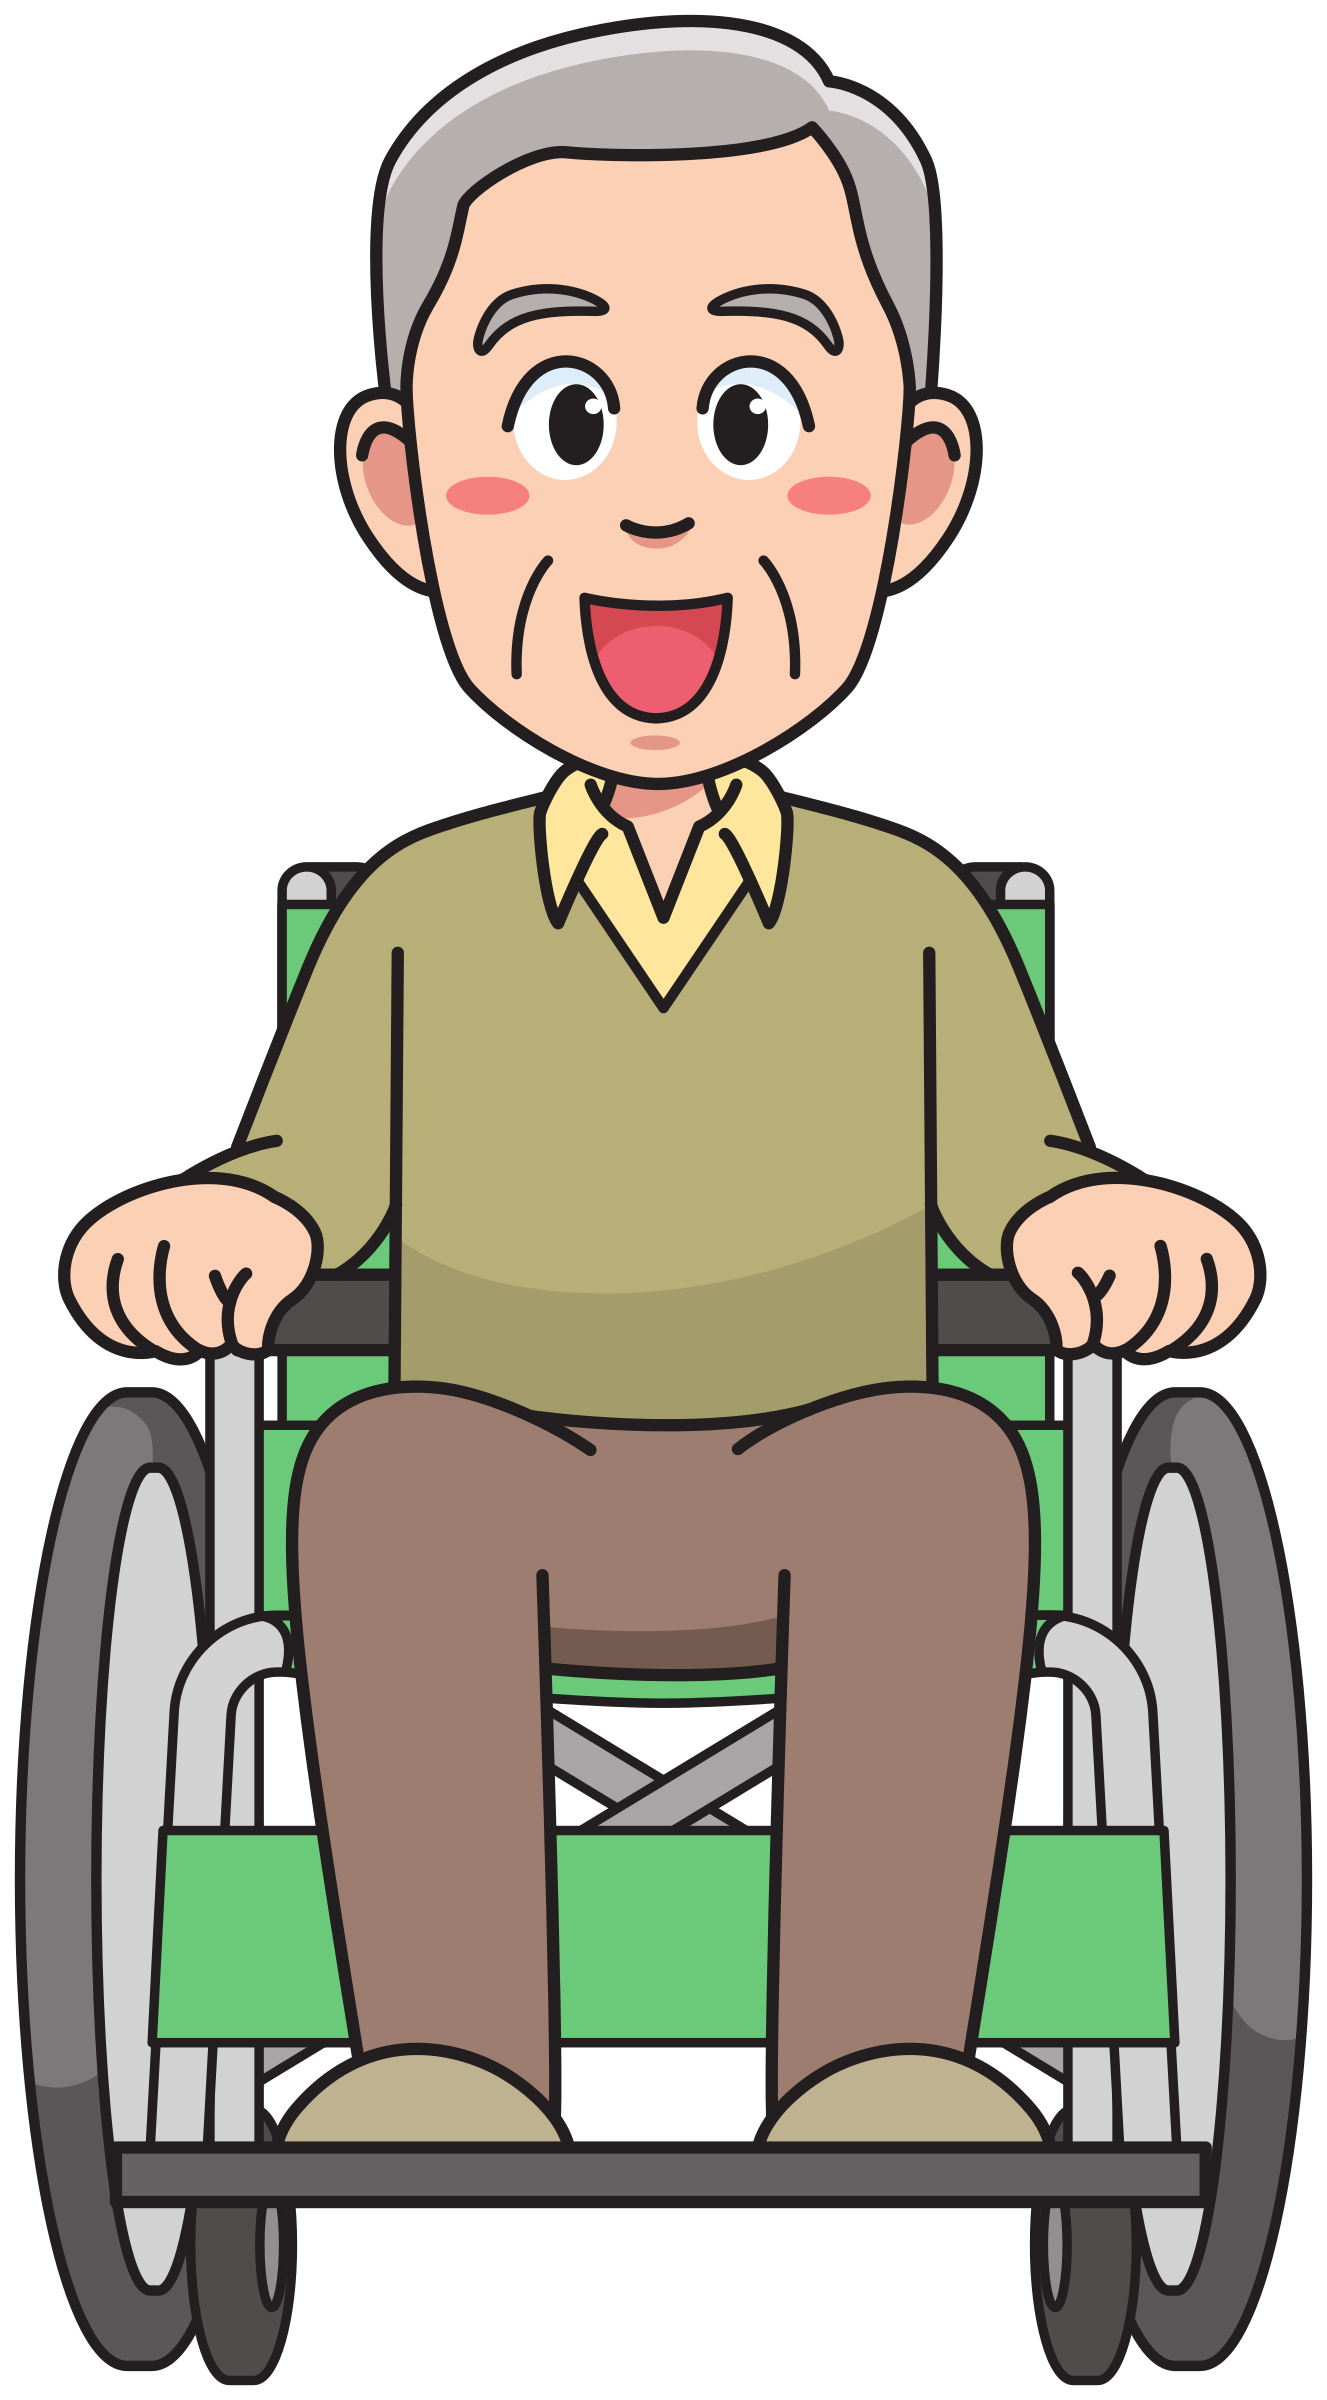 Grandfather on a wheelchair by Juhele